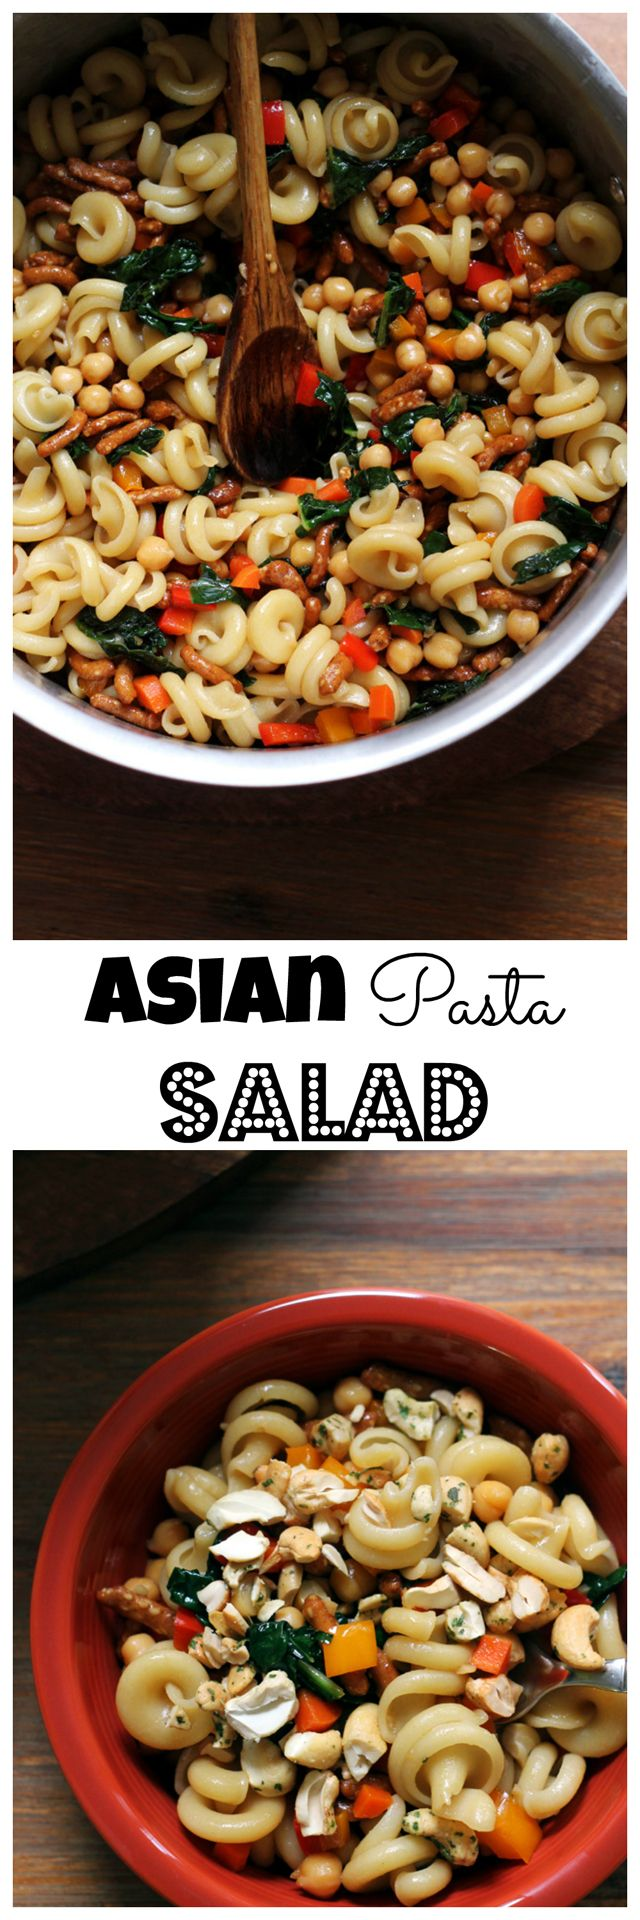 Move over mayo-drenched pasta salads, this Asian pasta salad is dressed with a sweet-salty sesame vinaigrette and filled with fresh vegetables.